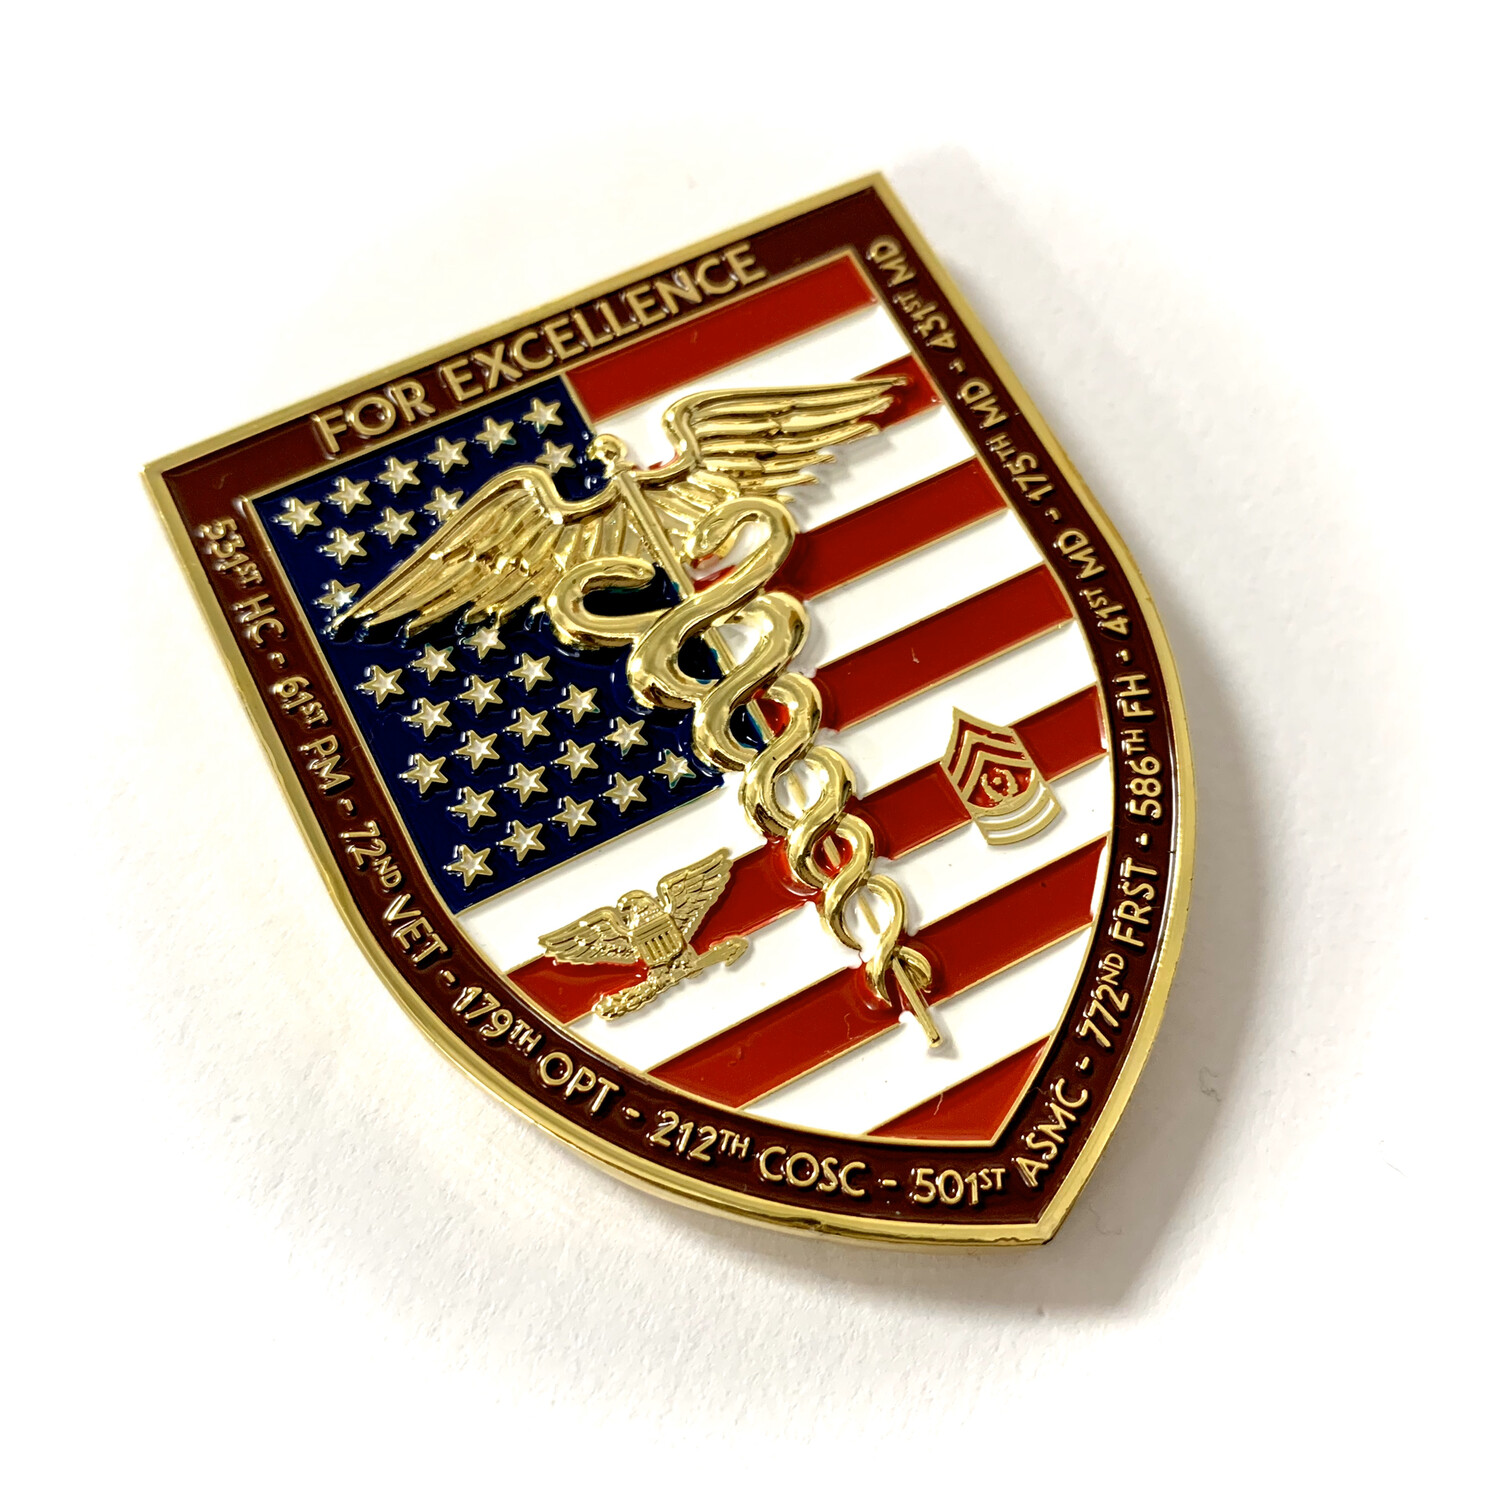 44th Medical Brigade Coin